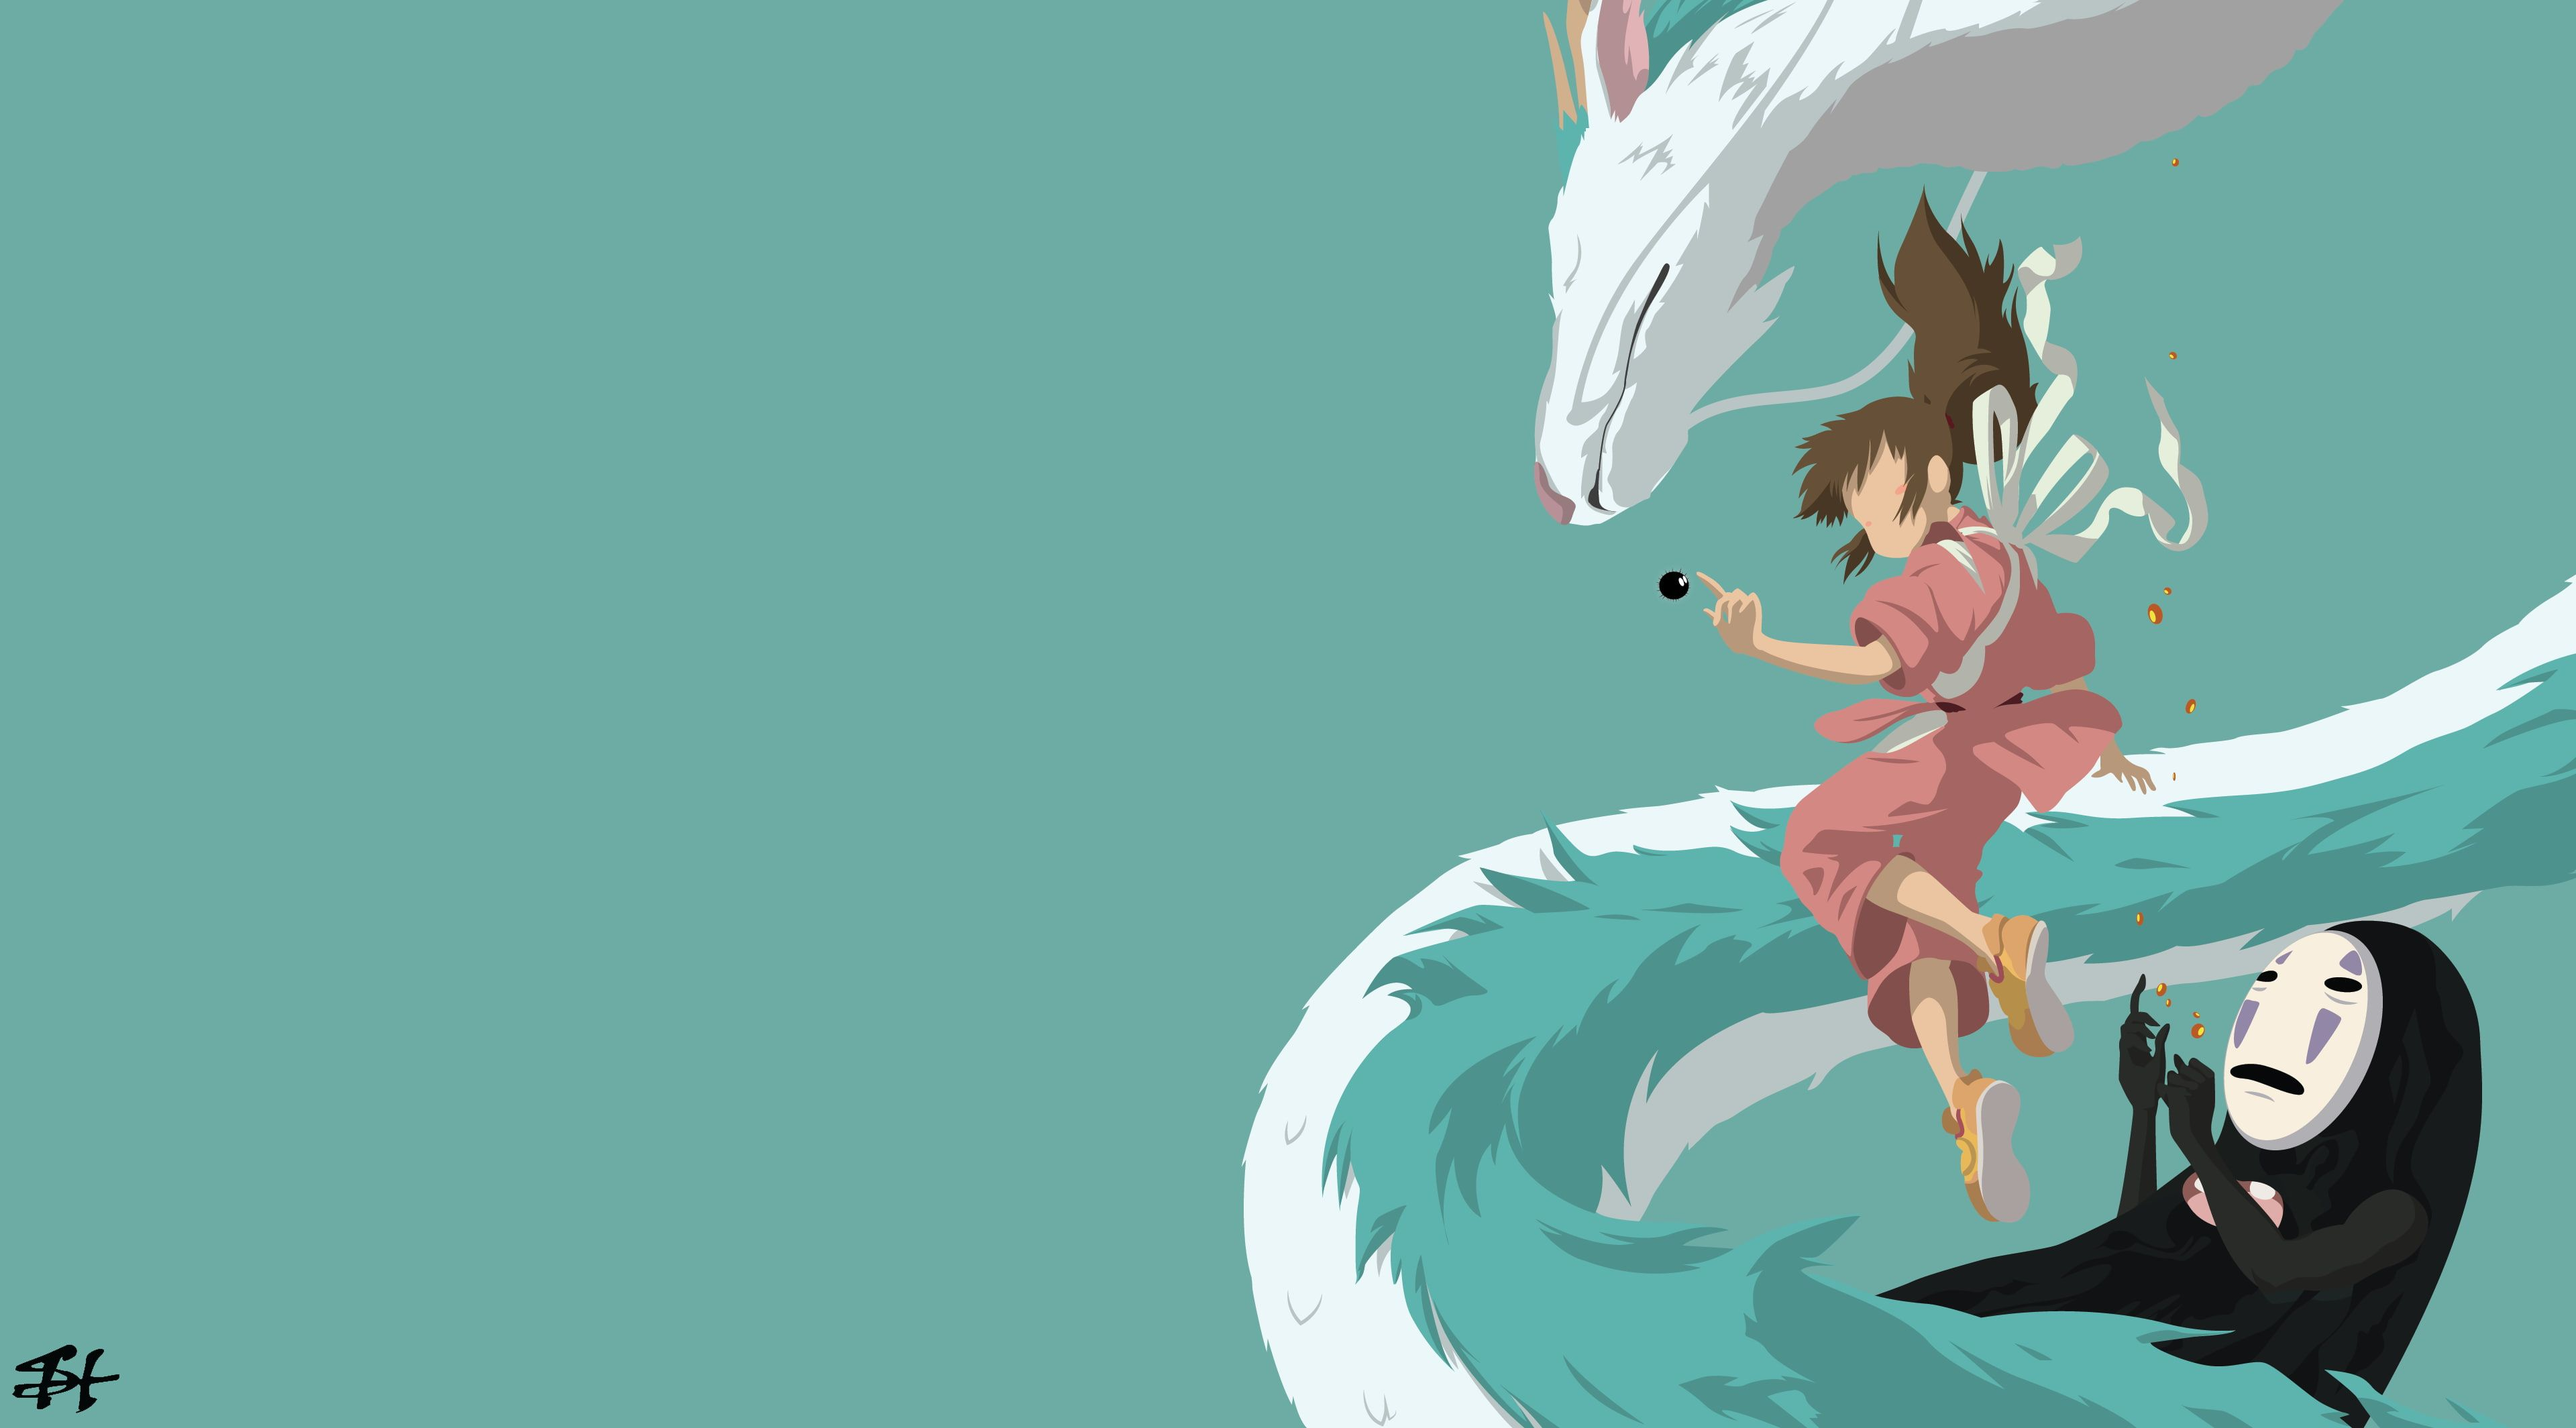 Spirited Away Chihiro Minimalism 4k Wallpaper Hdwallpaper Desktop In 2020 Desktop Wallpaper Art Spirited Away Wallpaper Anime Wallpaper Live